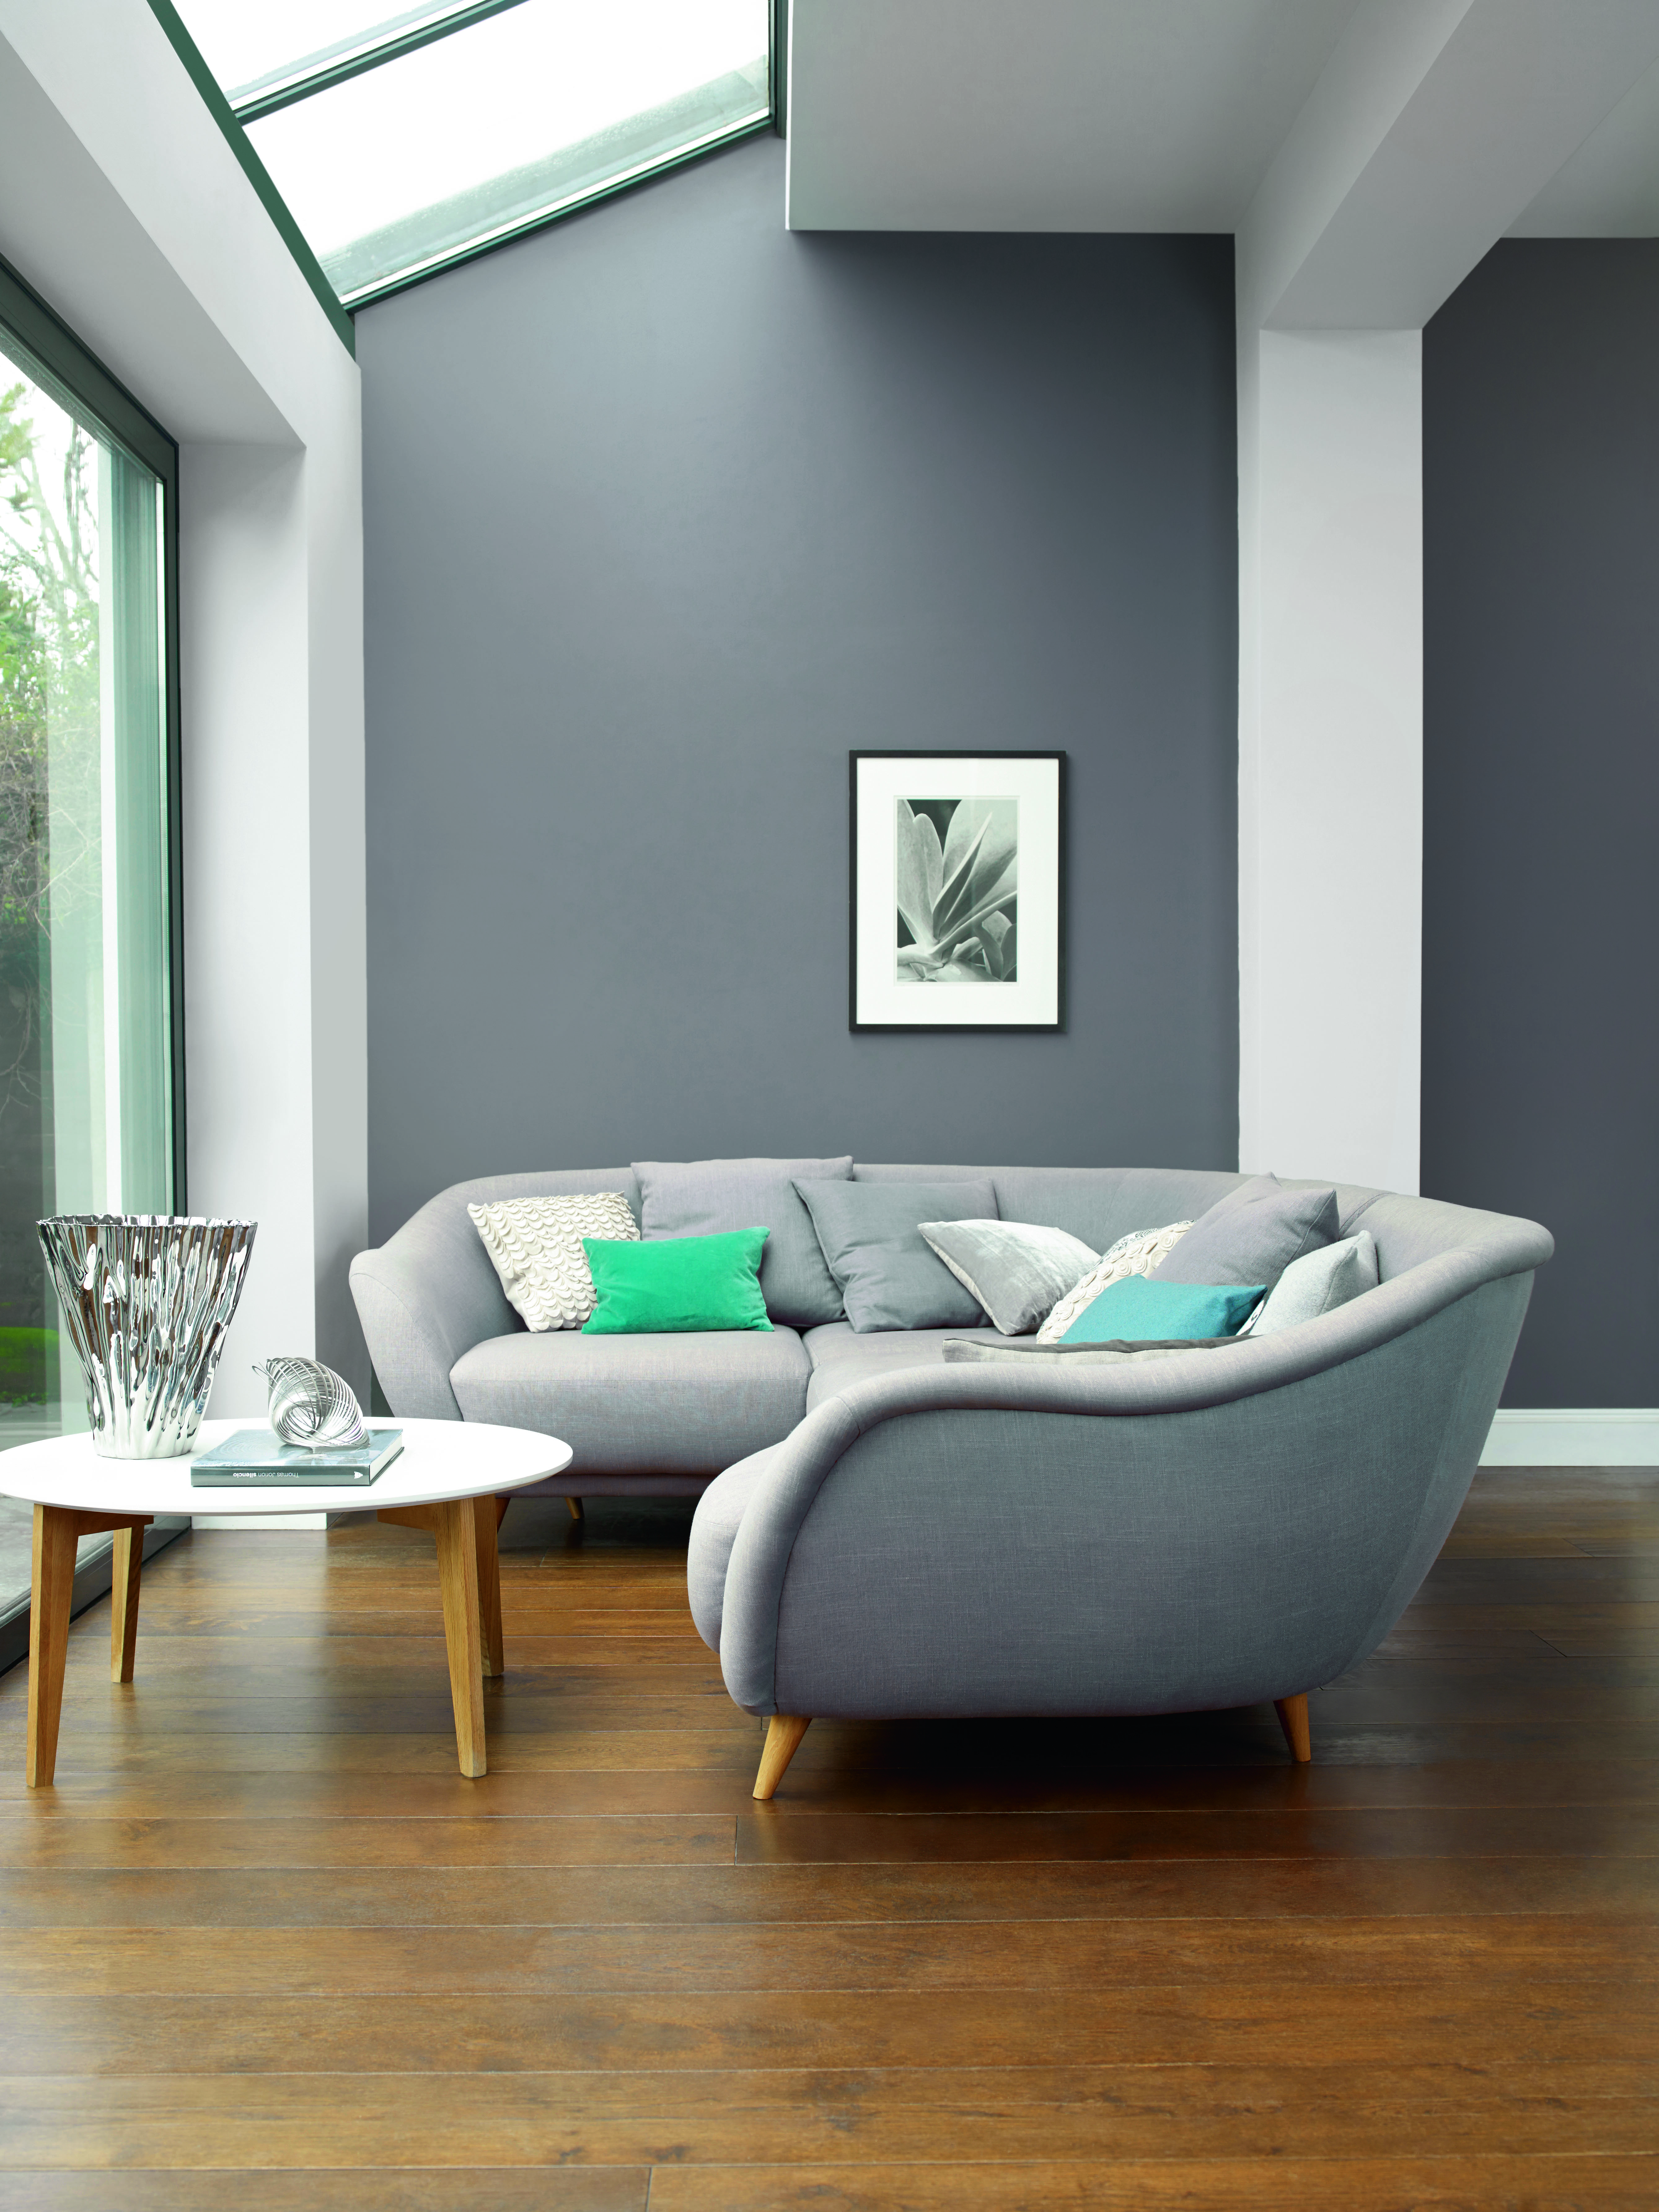 The Dulux Guide To Grey Interiors Decorating Ideas Colour Trends Red Online Red Online